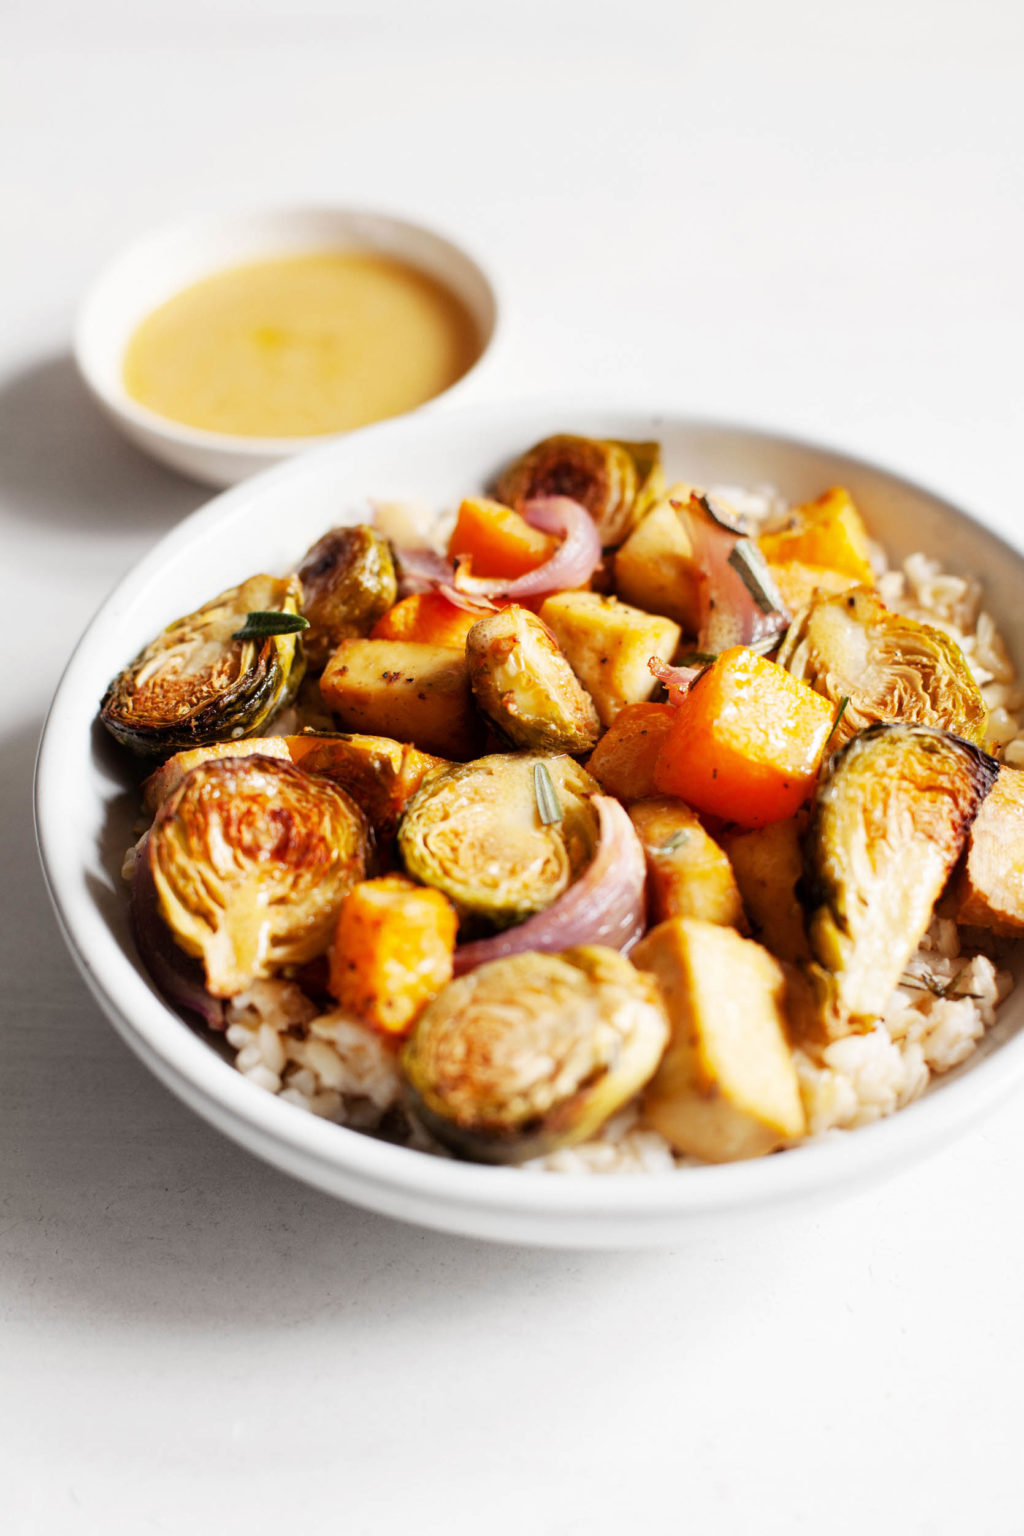 A serving bowl of seasonal, autumn produce is served over rice and accompanied by a small bowl of vinaigrette on the side.